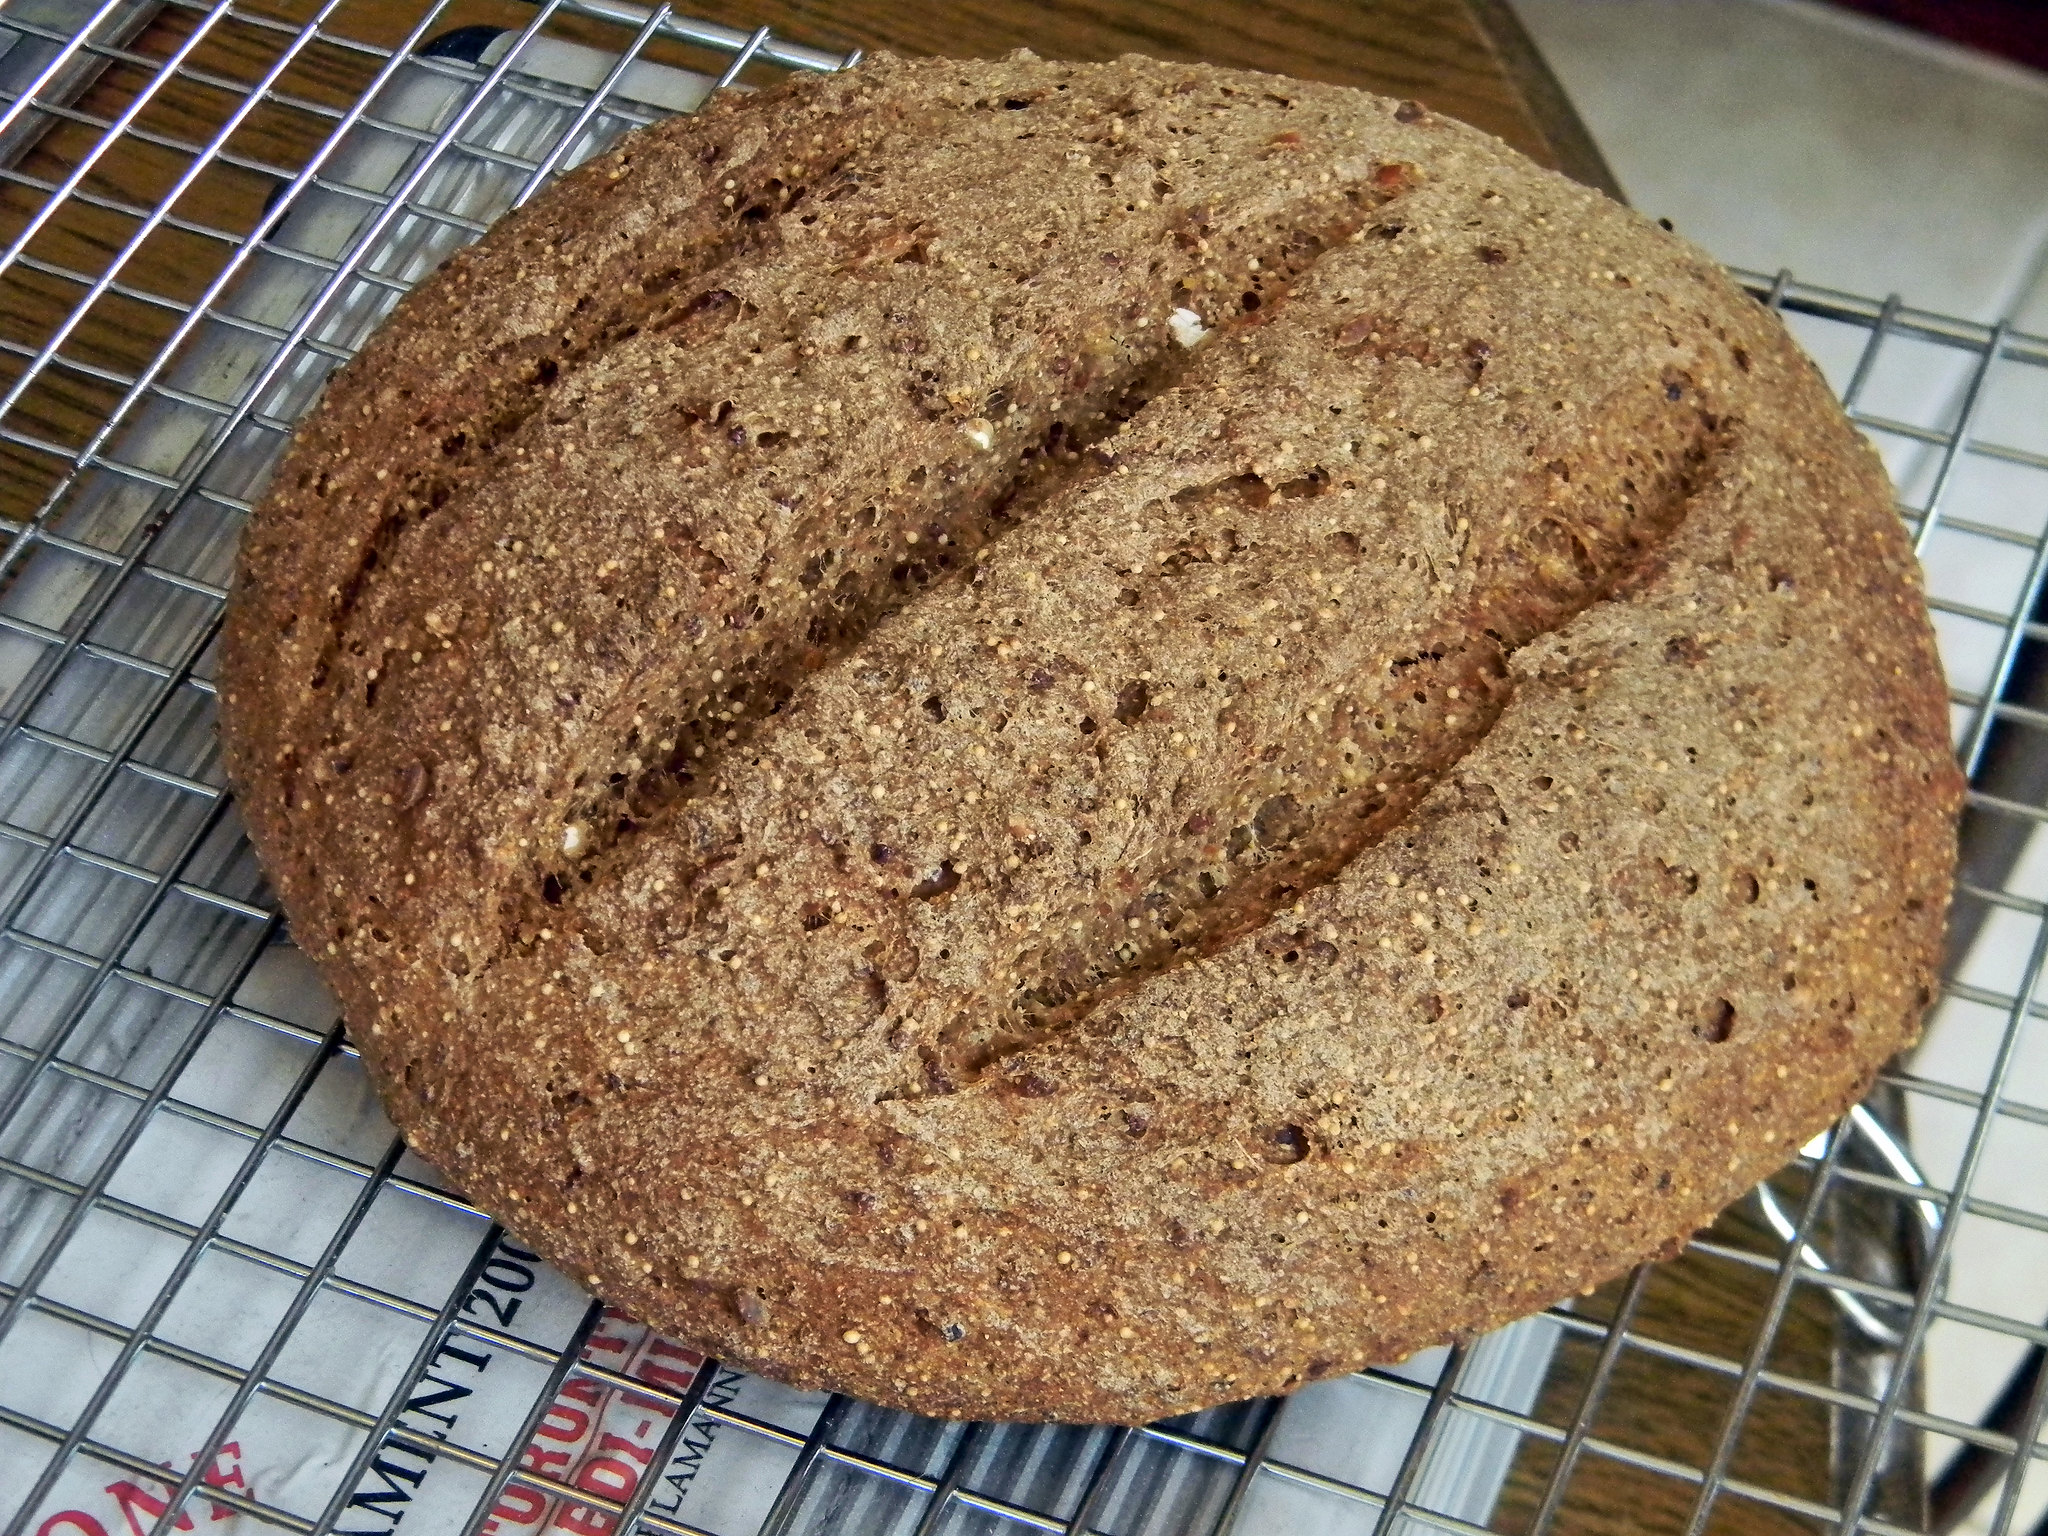 Kitchen Sink Bread (AKA Hearty Multigrain Bread)